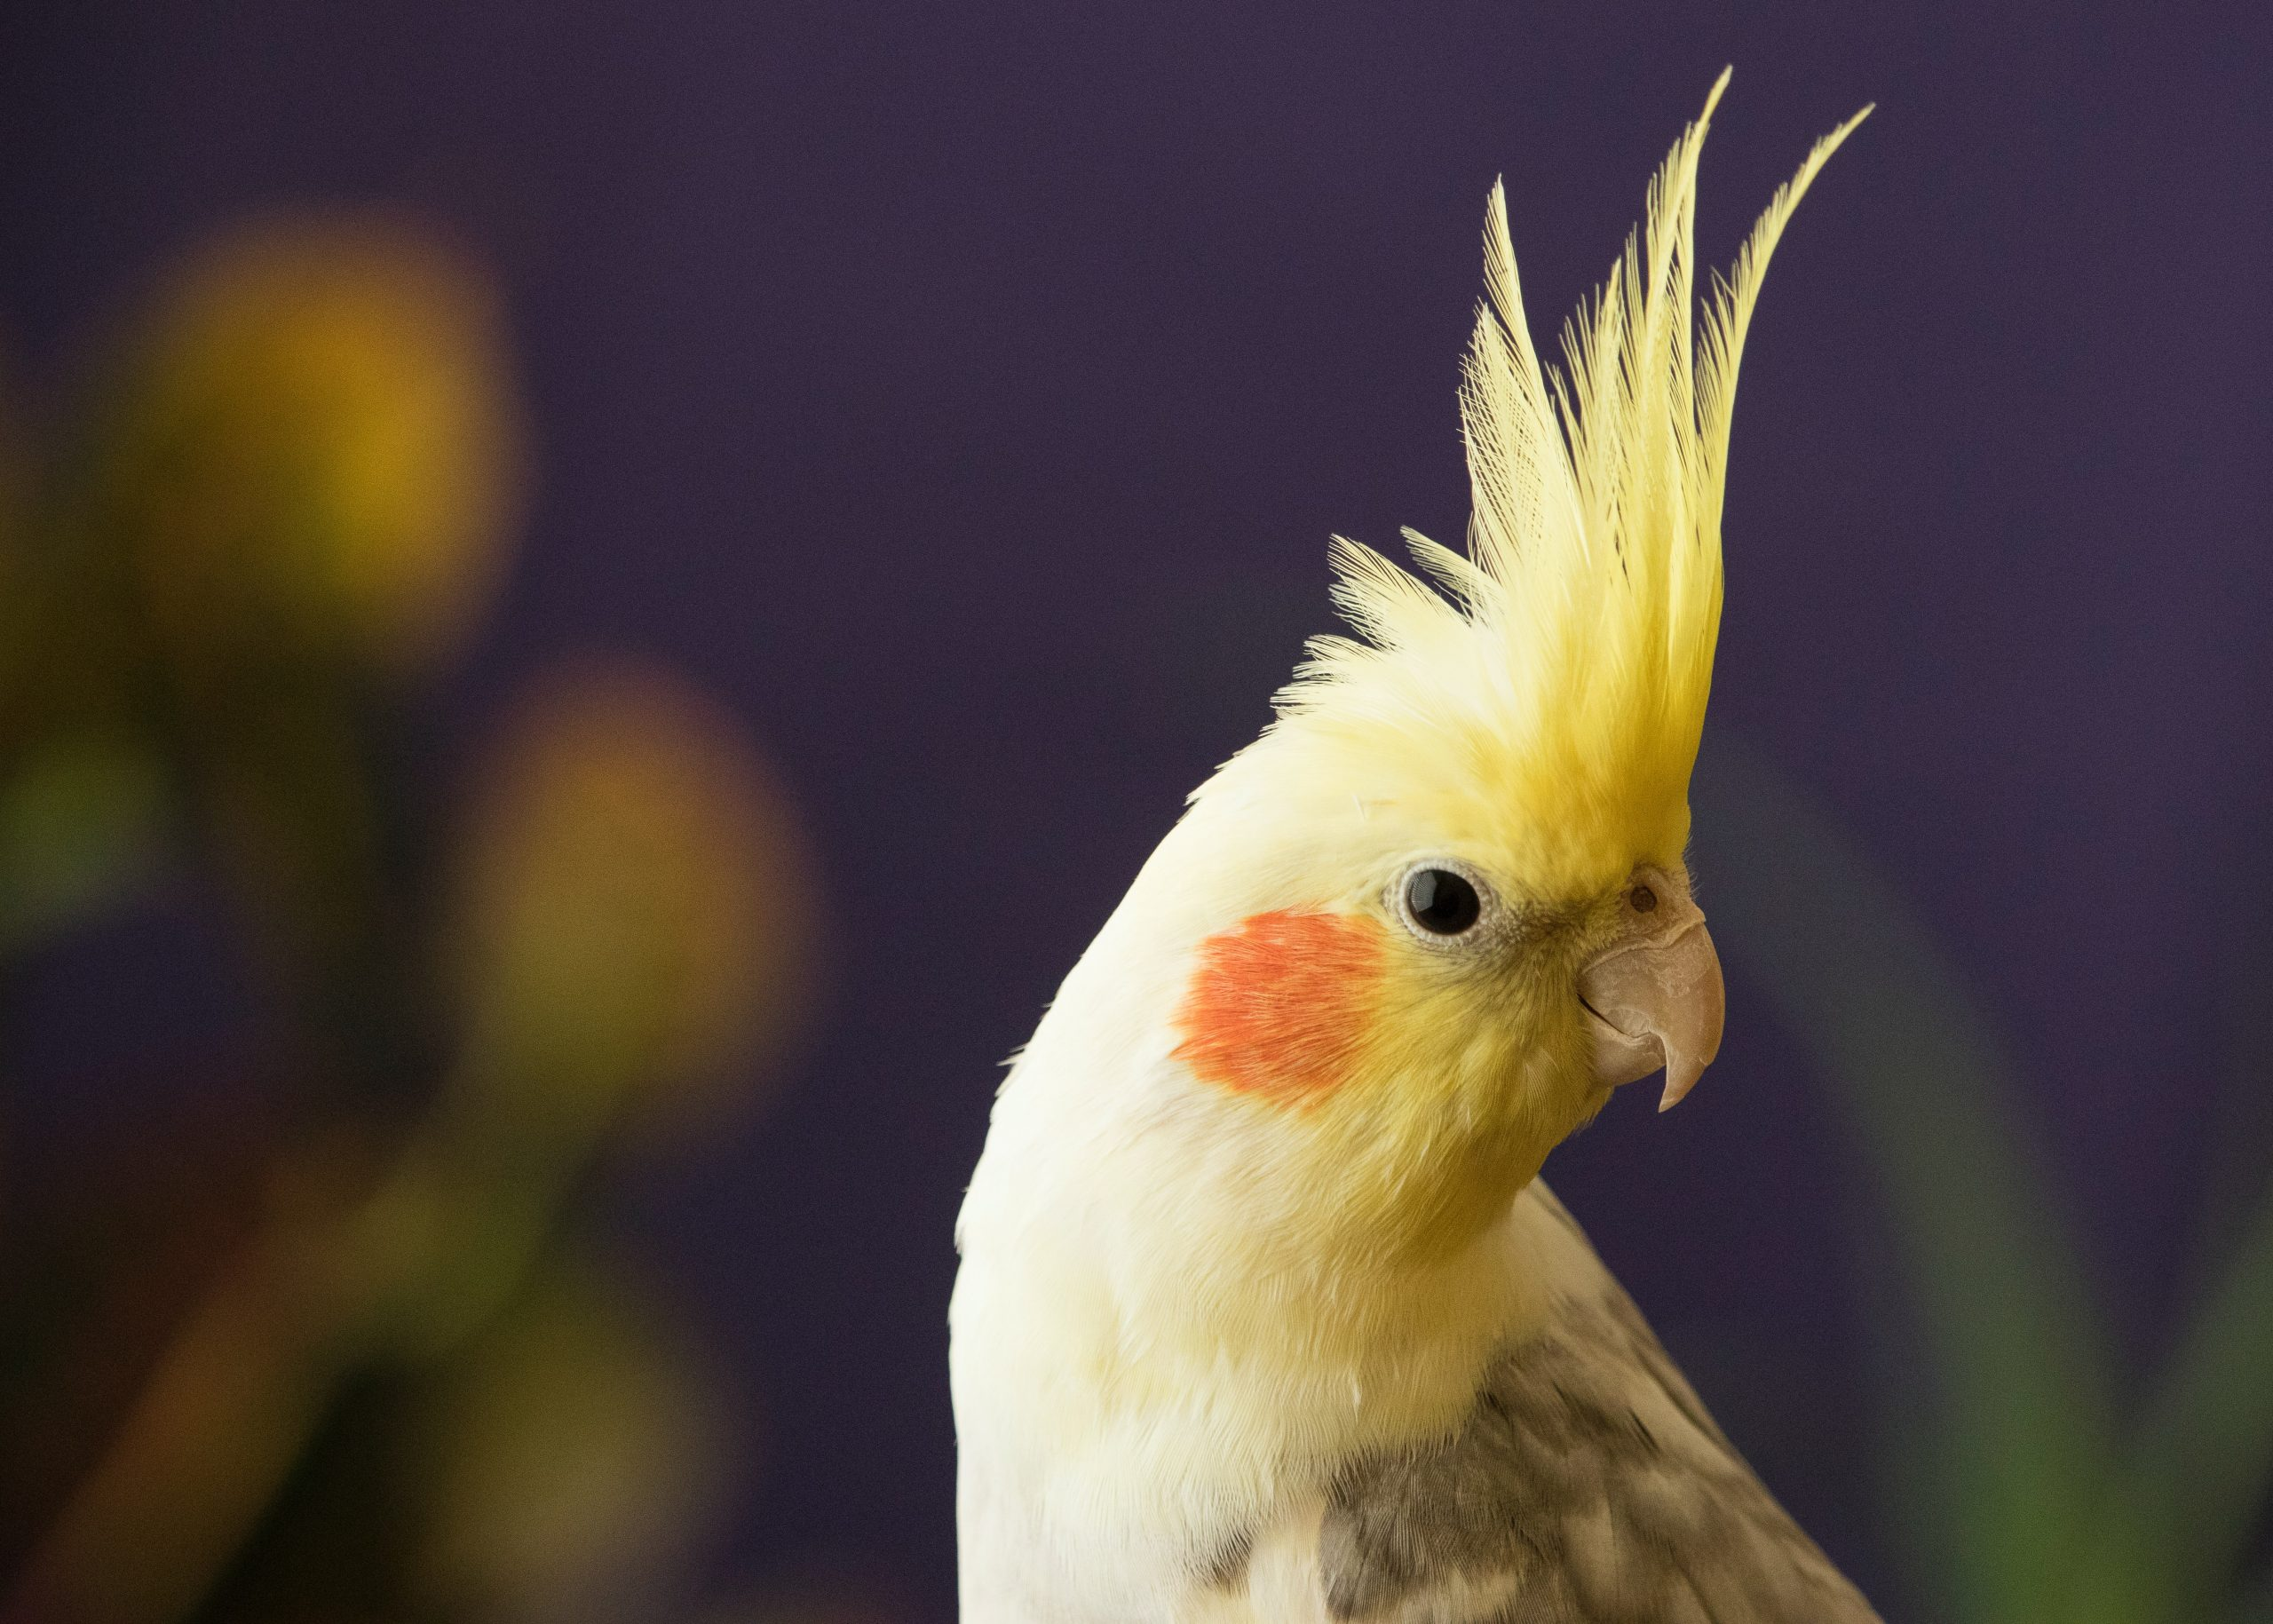 How to make your Cockatiel happy in 5 easy steps!